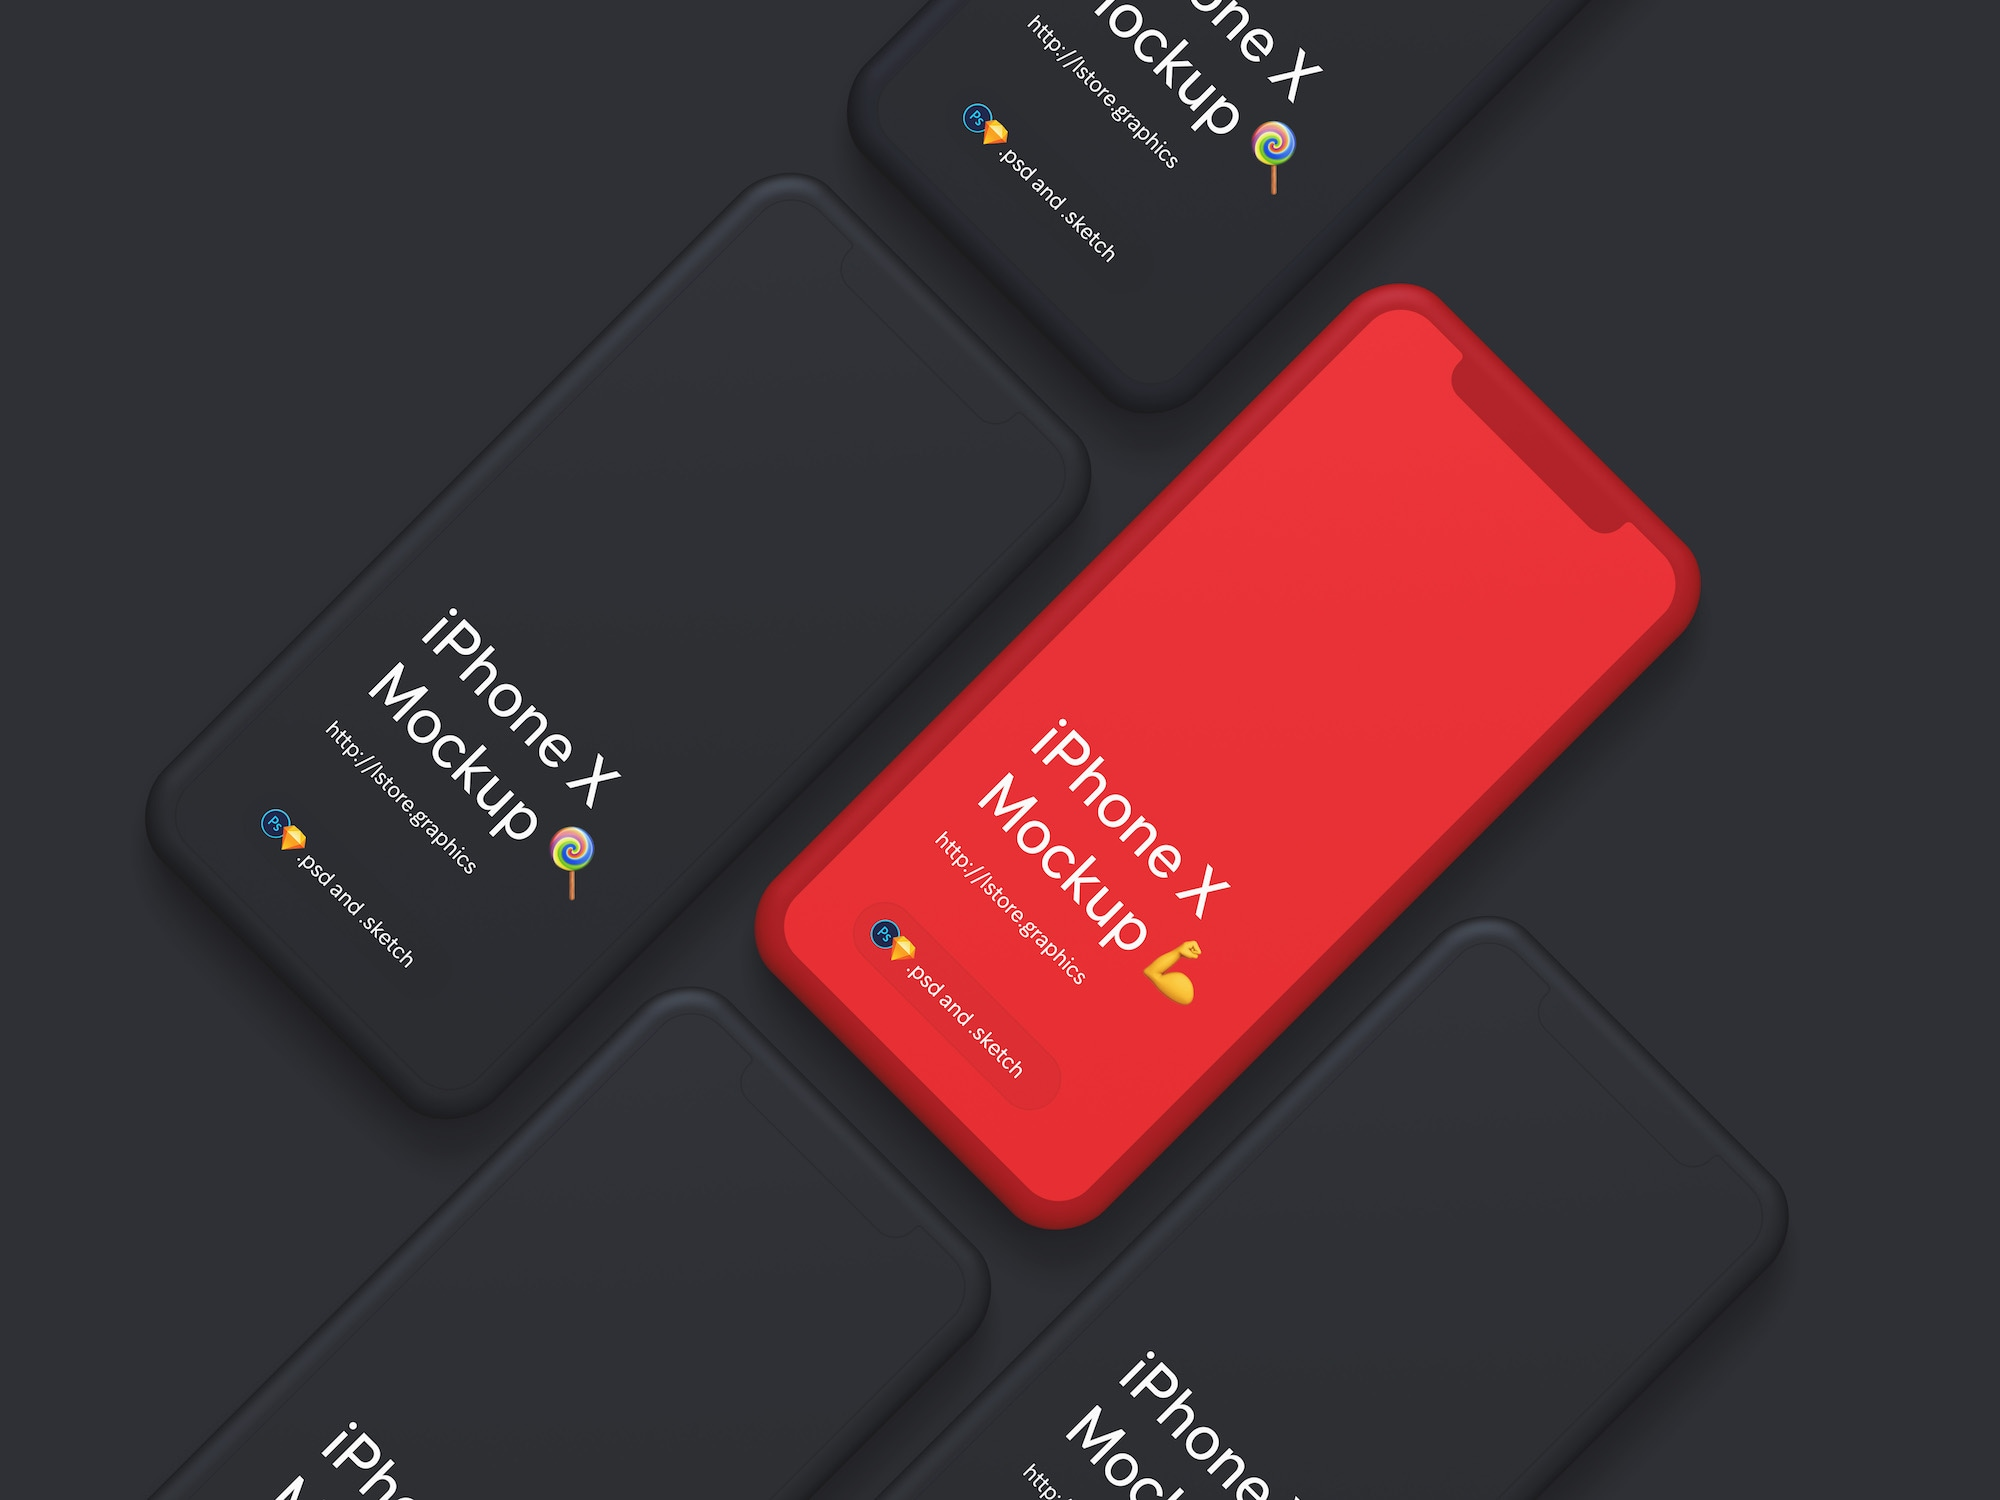 Simple iPhone X Mockups - Super clean, minimalistic free iPhone X mockups with awesome customization features and huge resolution.